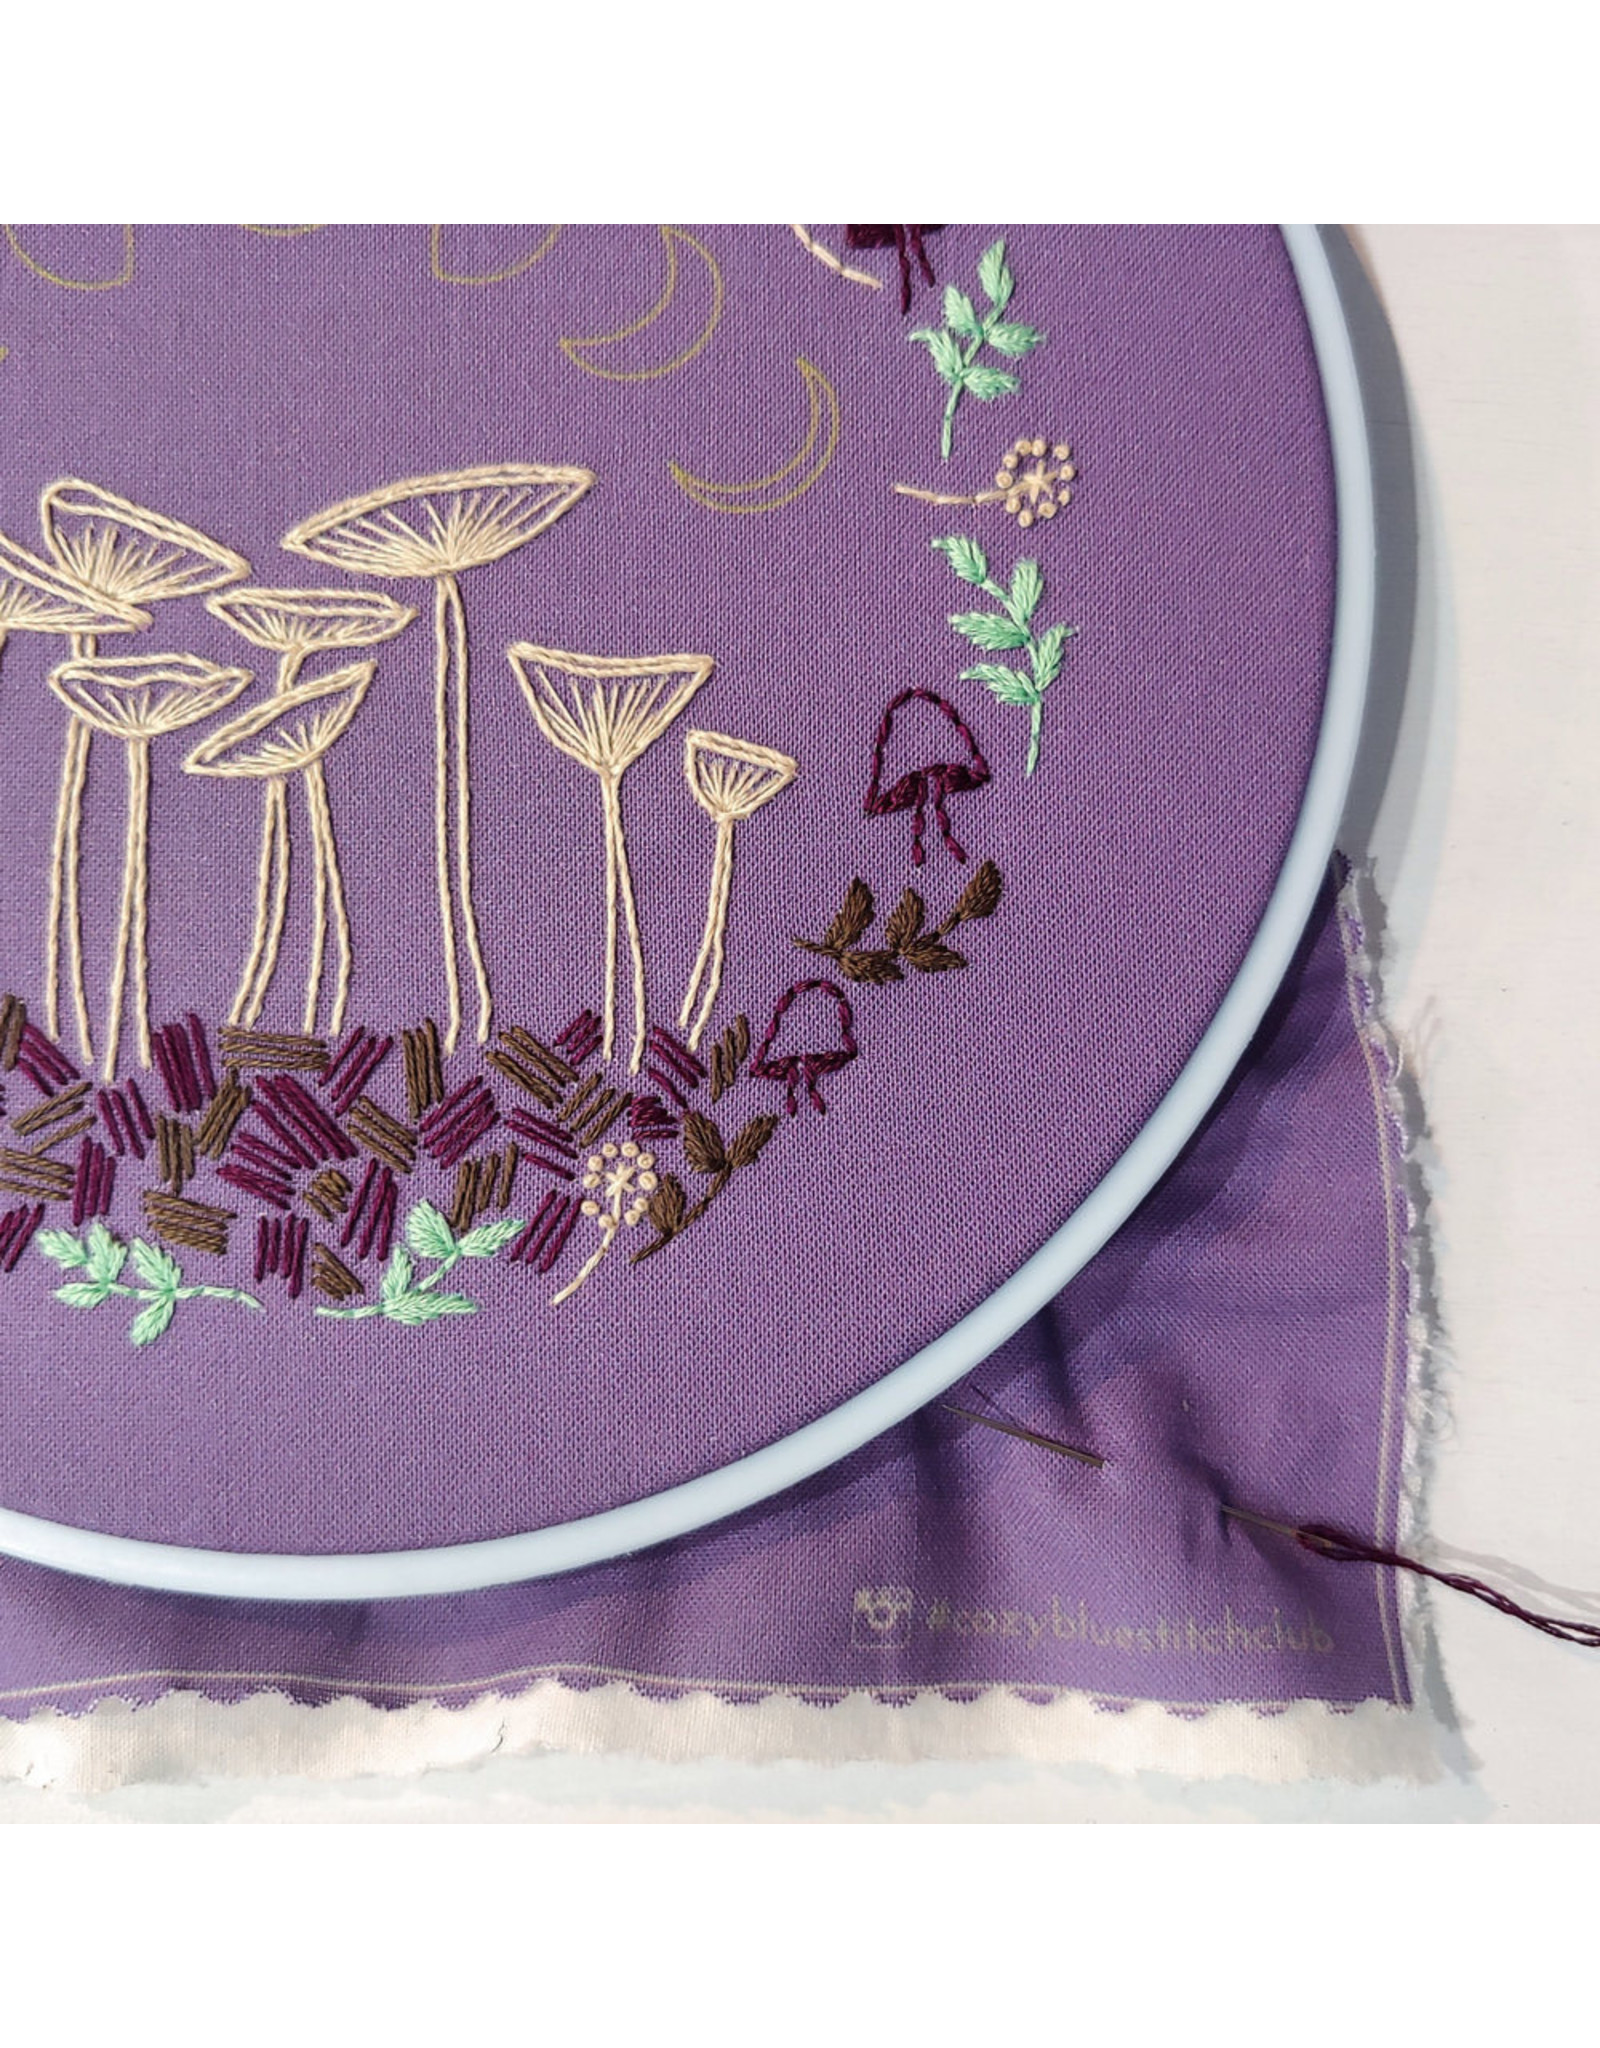 cozyblue Fairy Ring Embroidery Kit from cozyblue